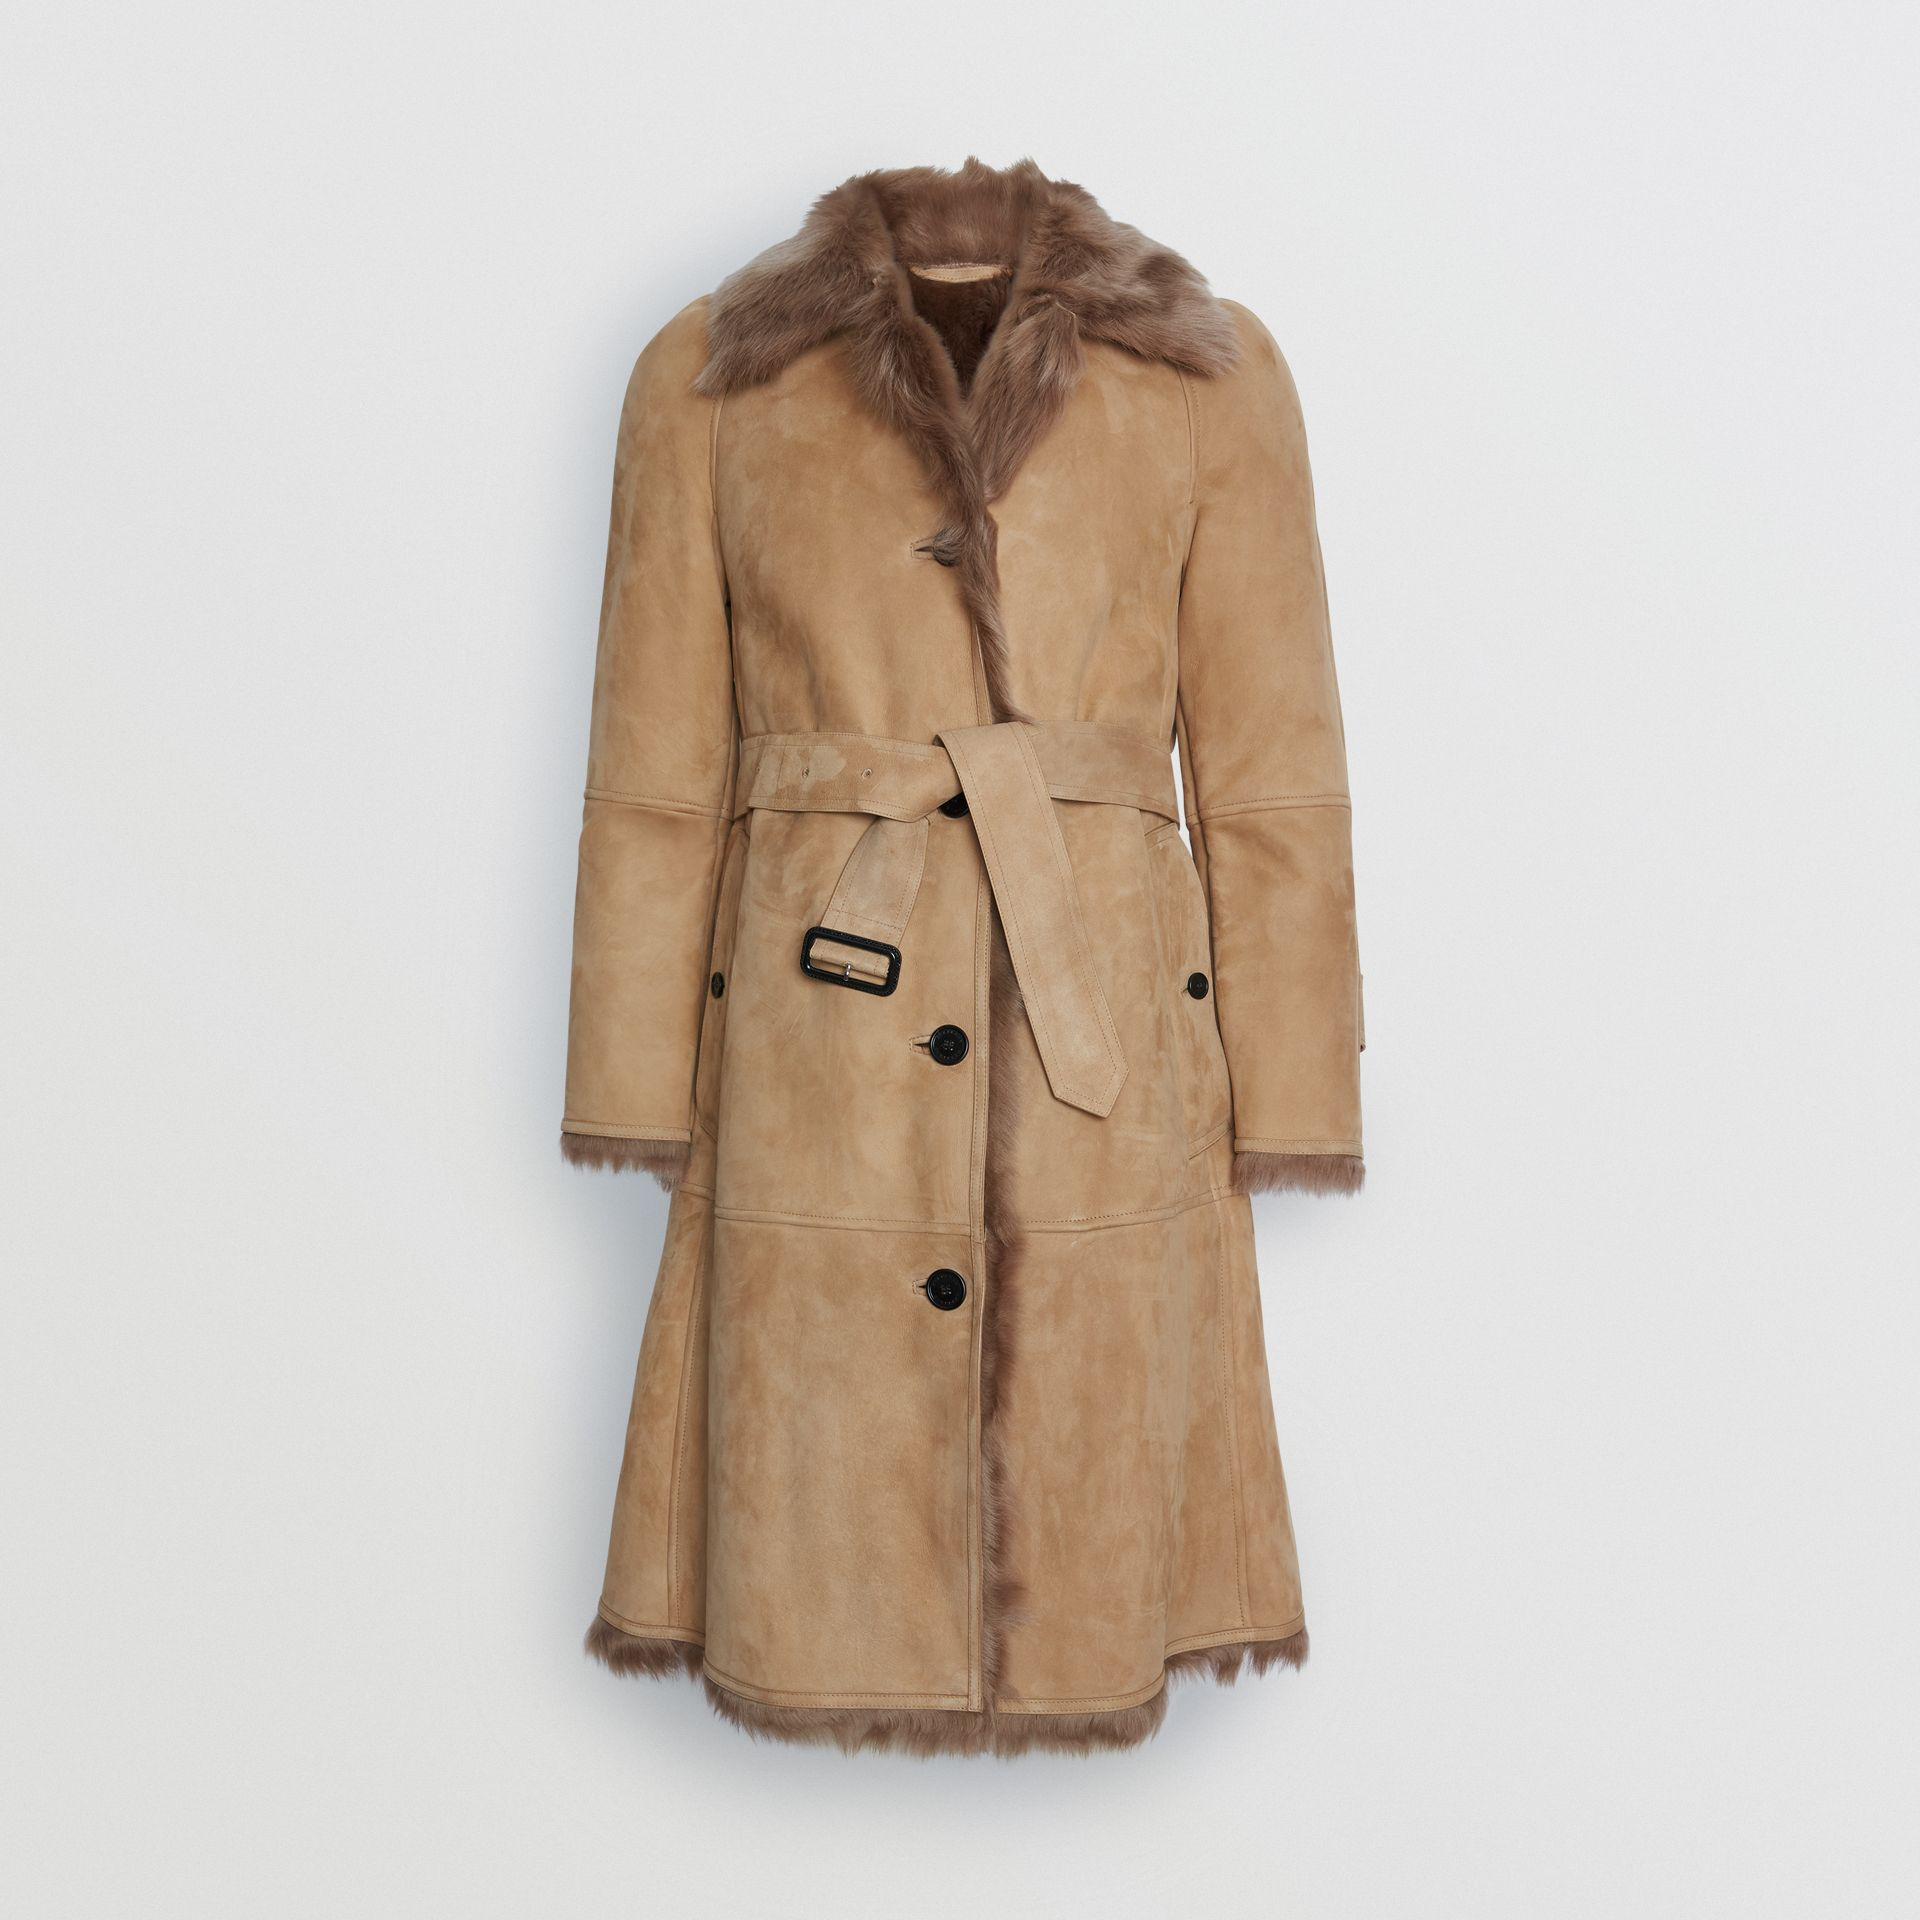 Shearling Car Coat in Camel - Women | Burberry - gallery image 3